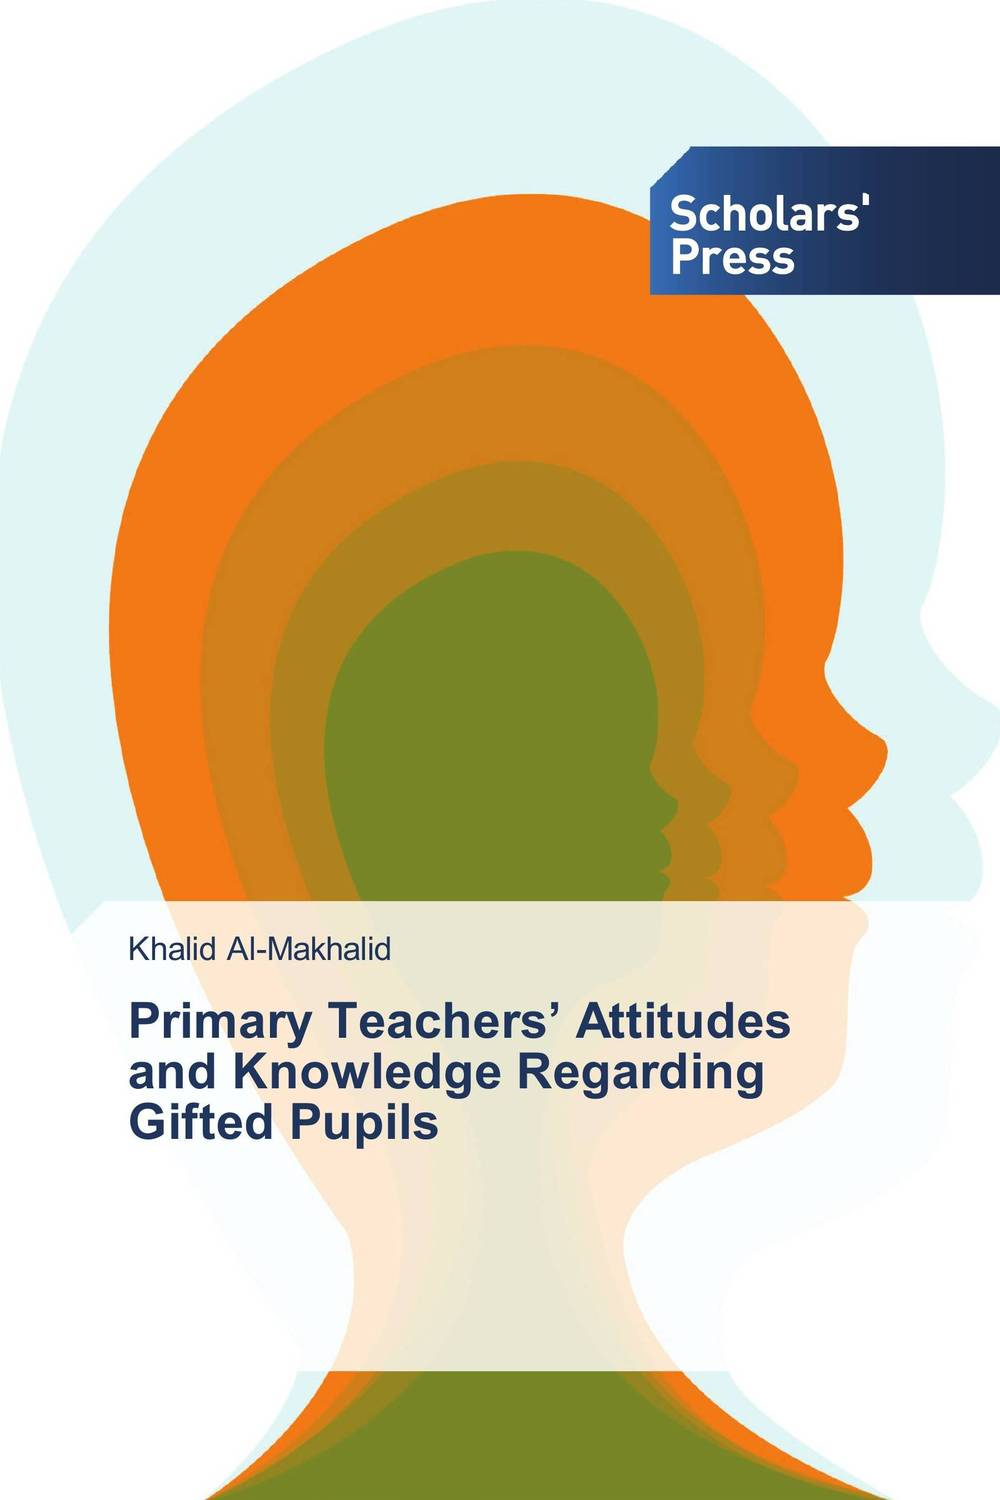 Primary Teachers' Attitudes and Knowledge Regarding Gifted Pupils